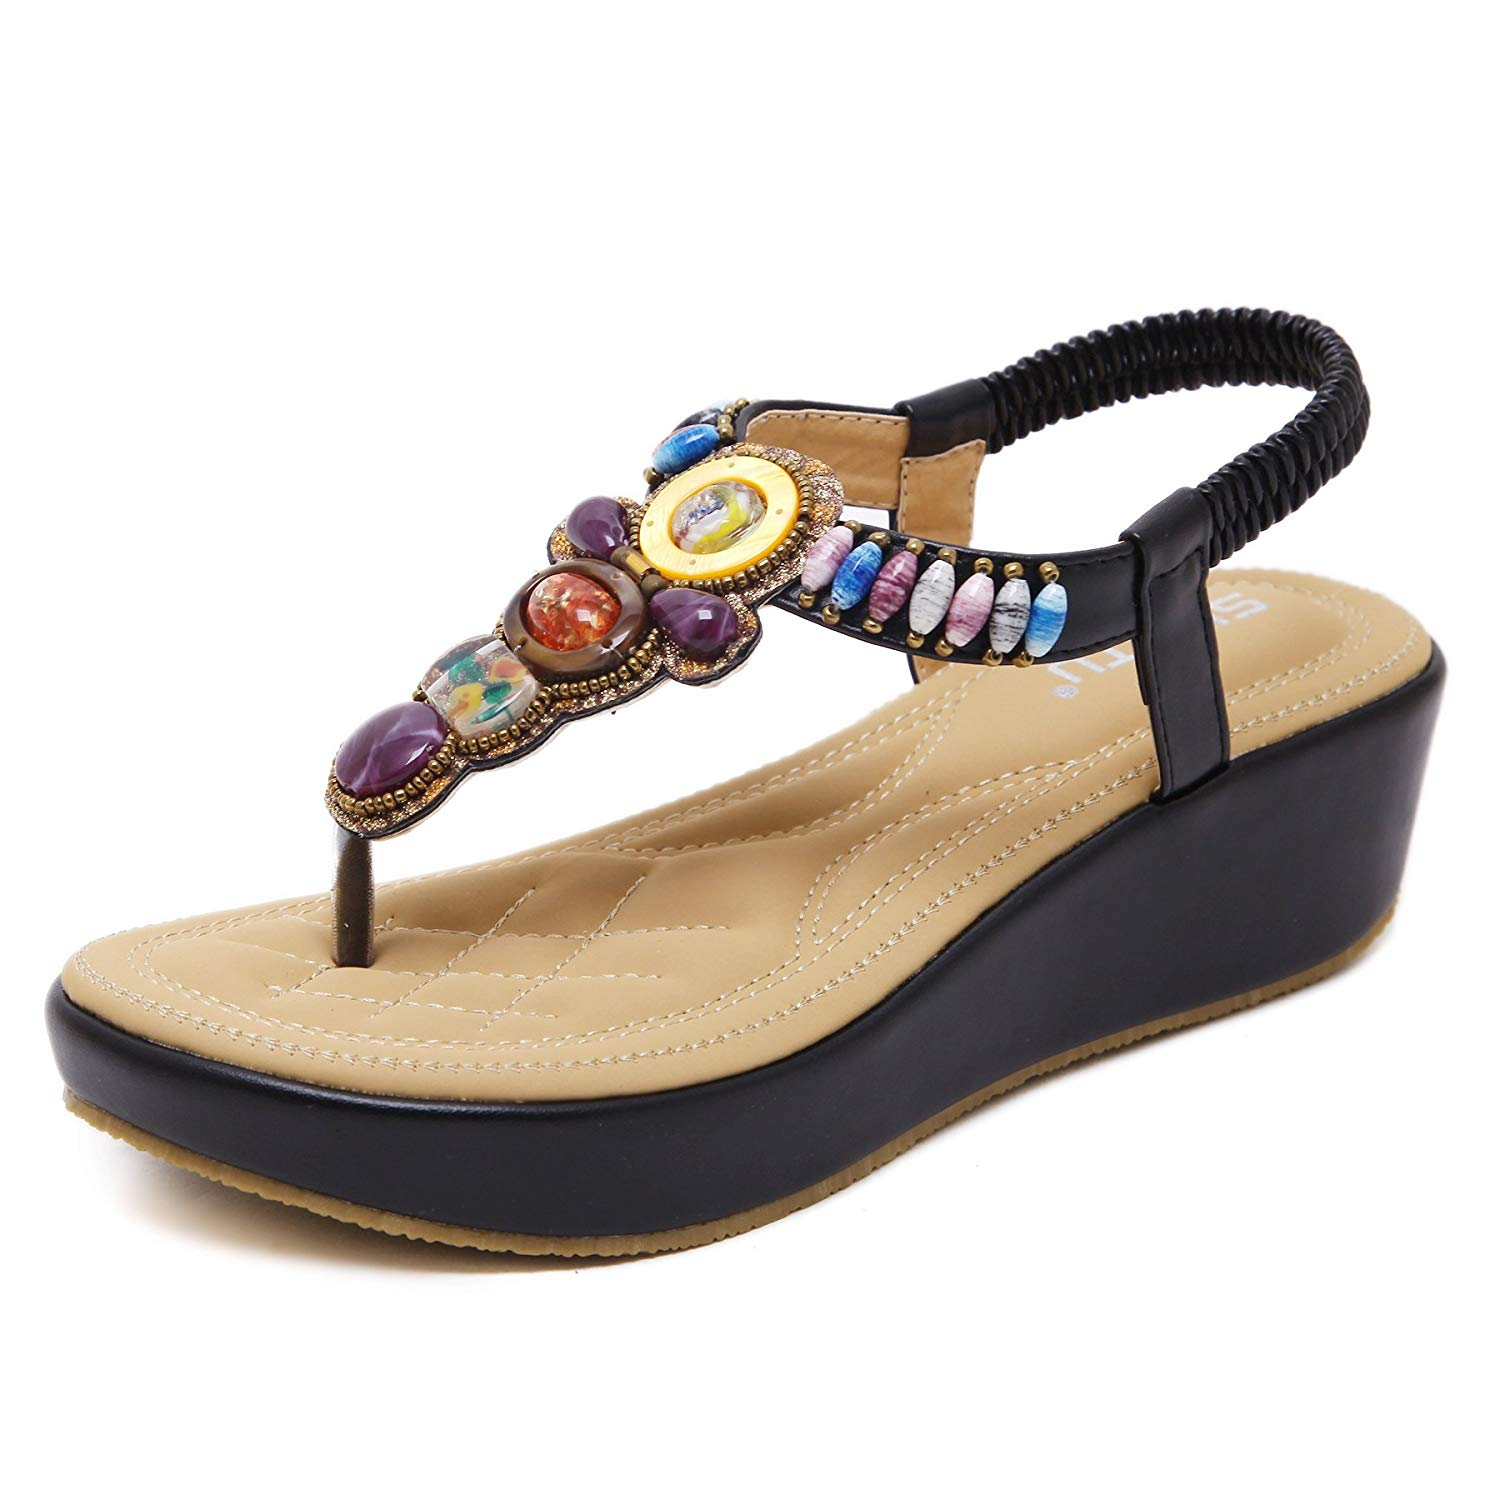 4f5fa48c2919 Get Quotations · Huagmei Womens Wedge Sandals Thong Platform Beaded  Slingback Bohemia Summer Sandal